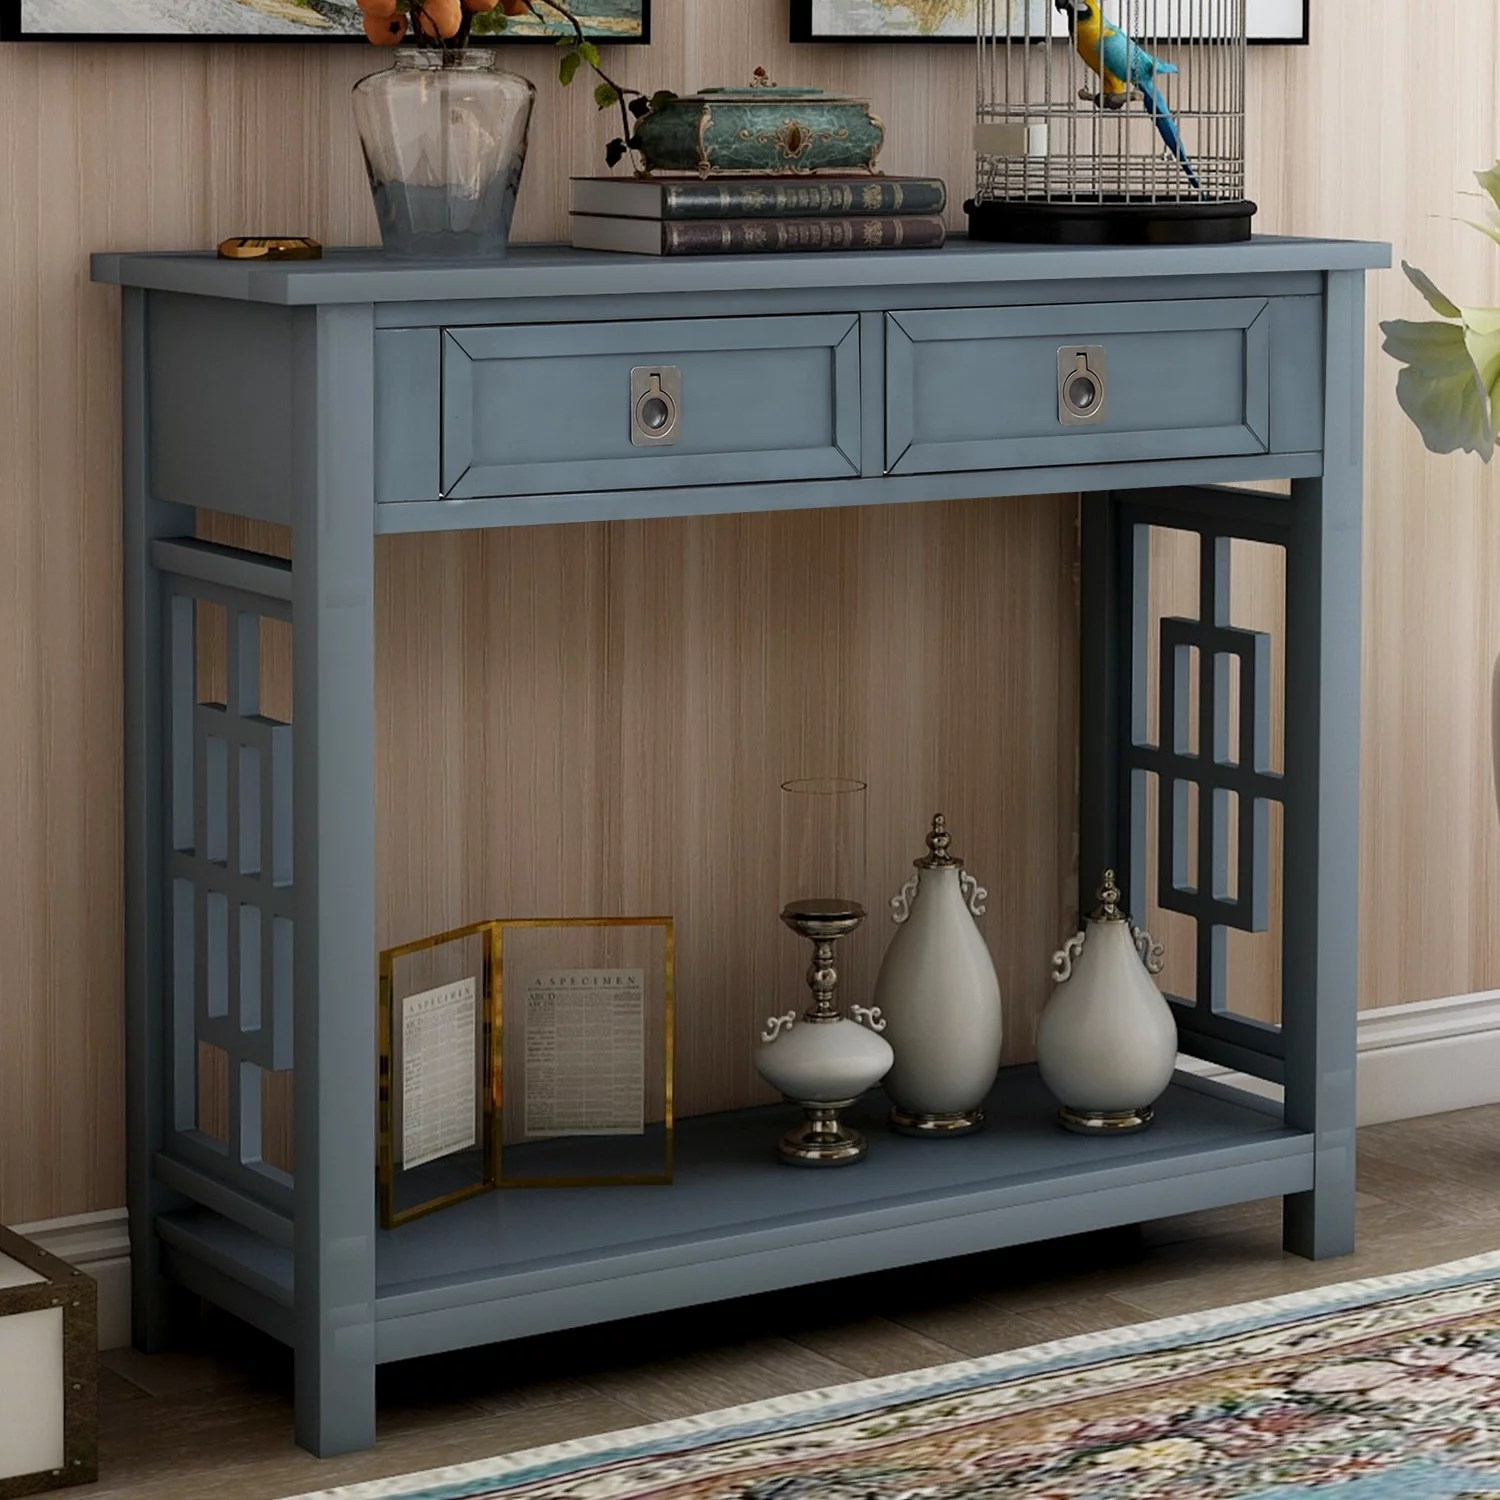 console tables with drawers btmway wood entrance console table for entryway farmhouse entryway foyer accent table rustic narrow hallway sofa couch